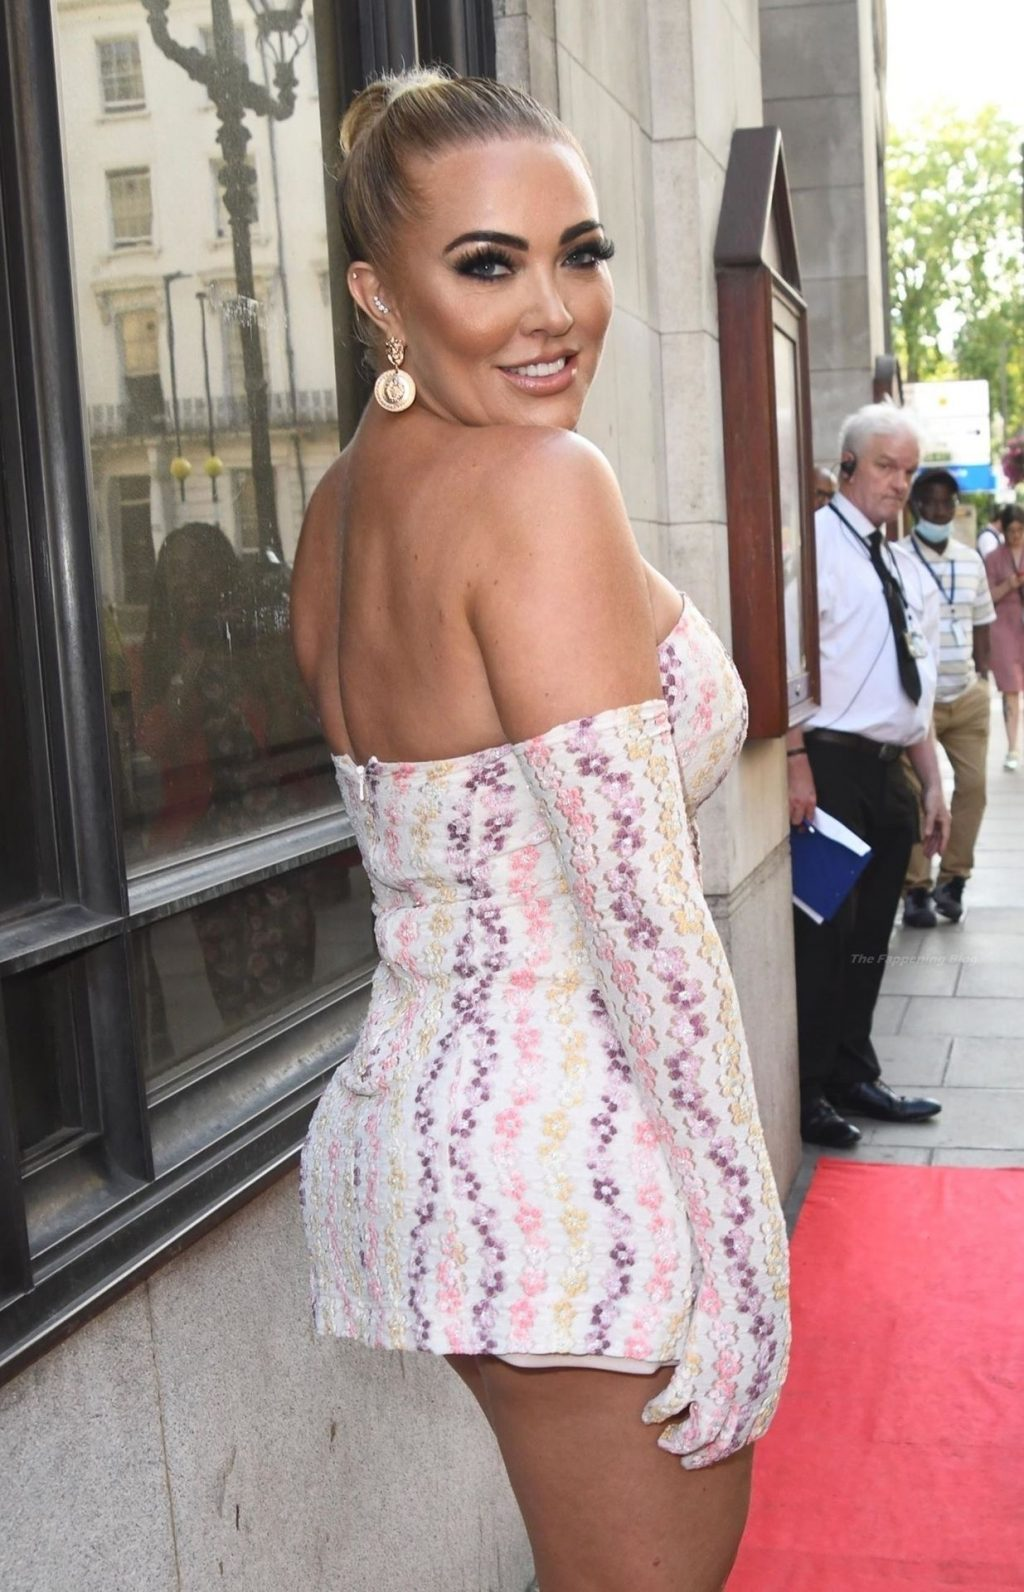 Aisleyne Horgan-Wallace is Pictured at The National Reality Awards in London (15 Photos)